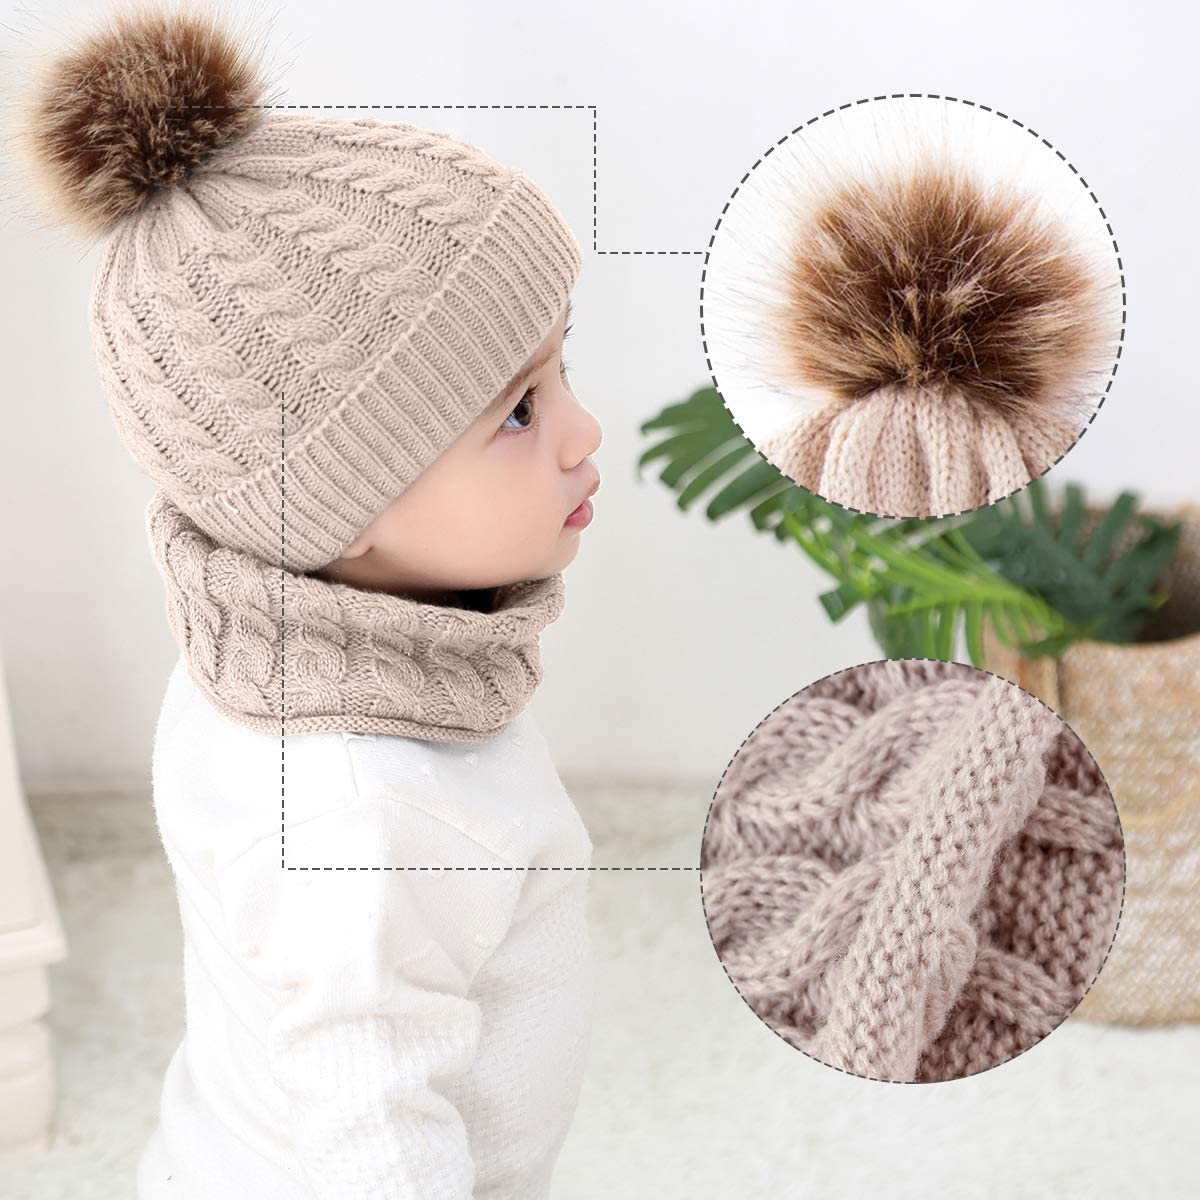 Realdo 2Pcs Baby Warm Knitted Hat+Scarf Infant Toddler Kids Girls Boys Soft Cute Cozy Chunky Winter Caps Set